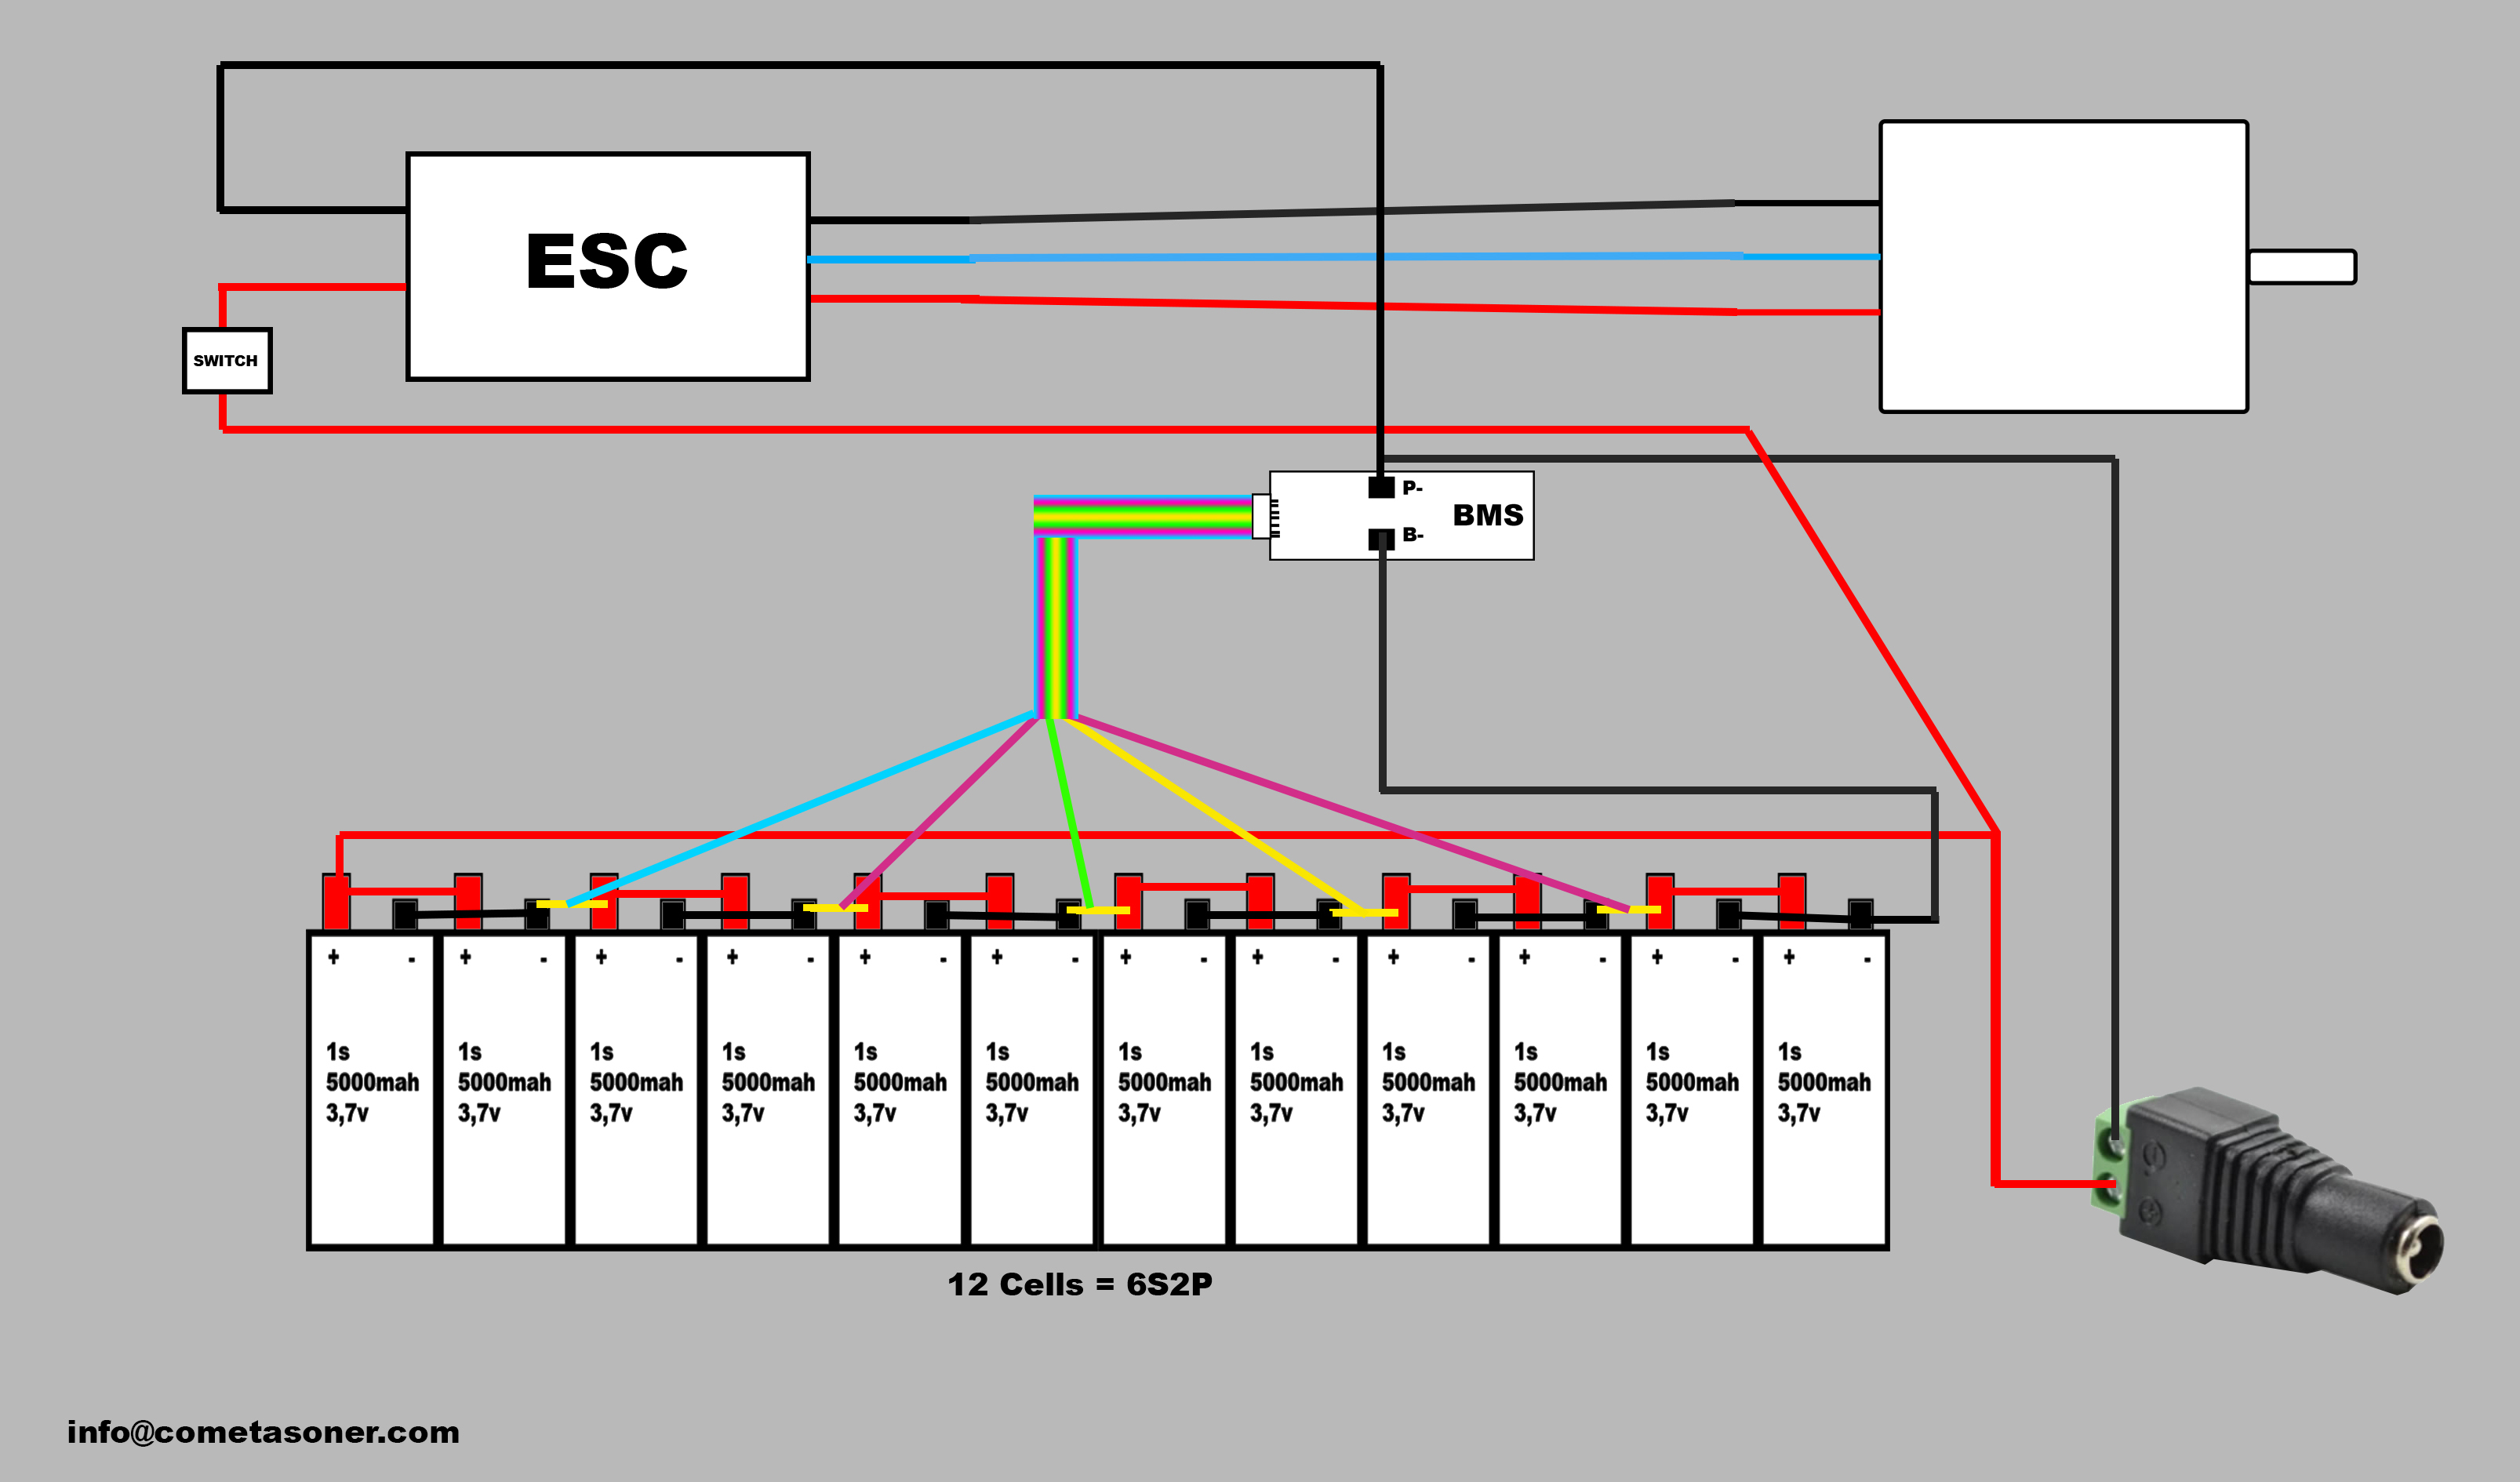 Bms Wiring Diagram from esk8content.nyc3.digitaloceanspaces.com